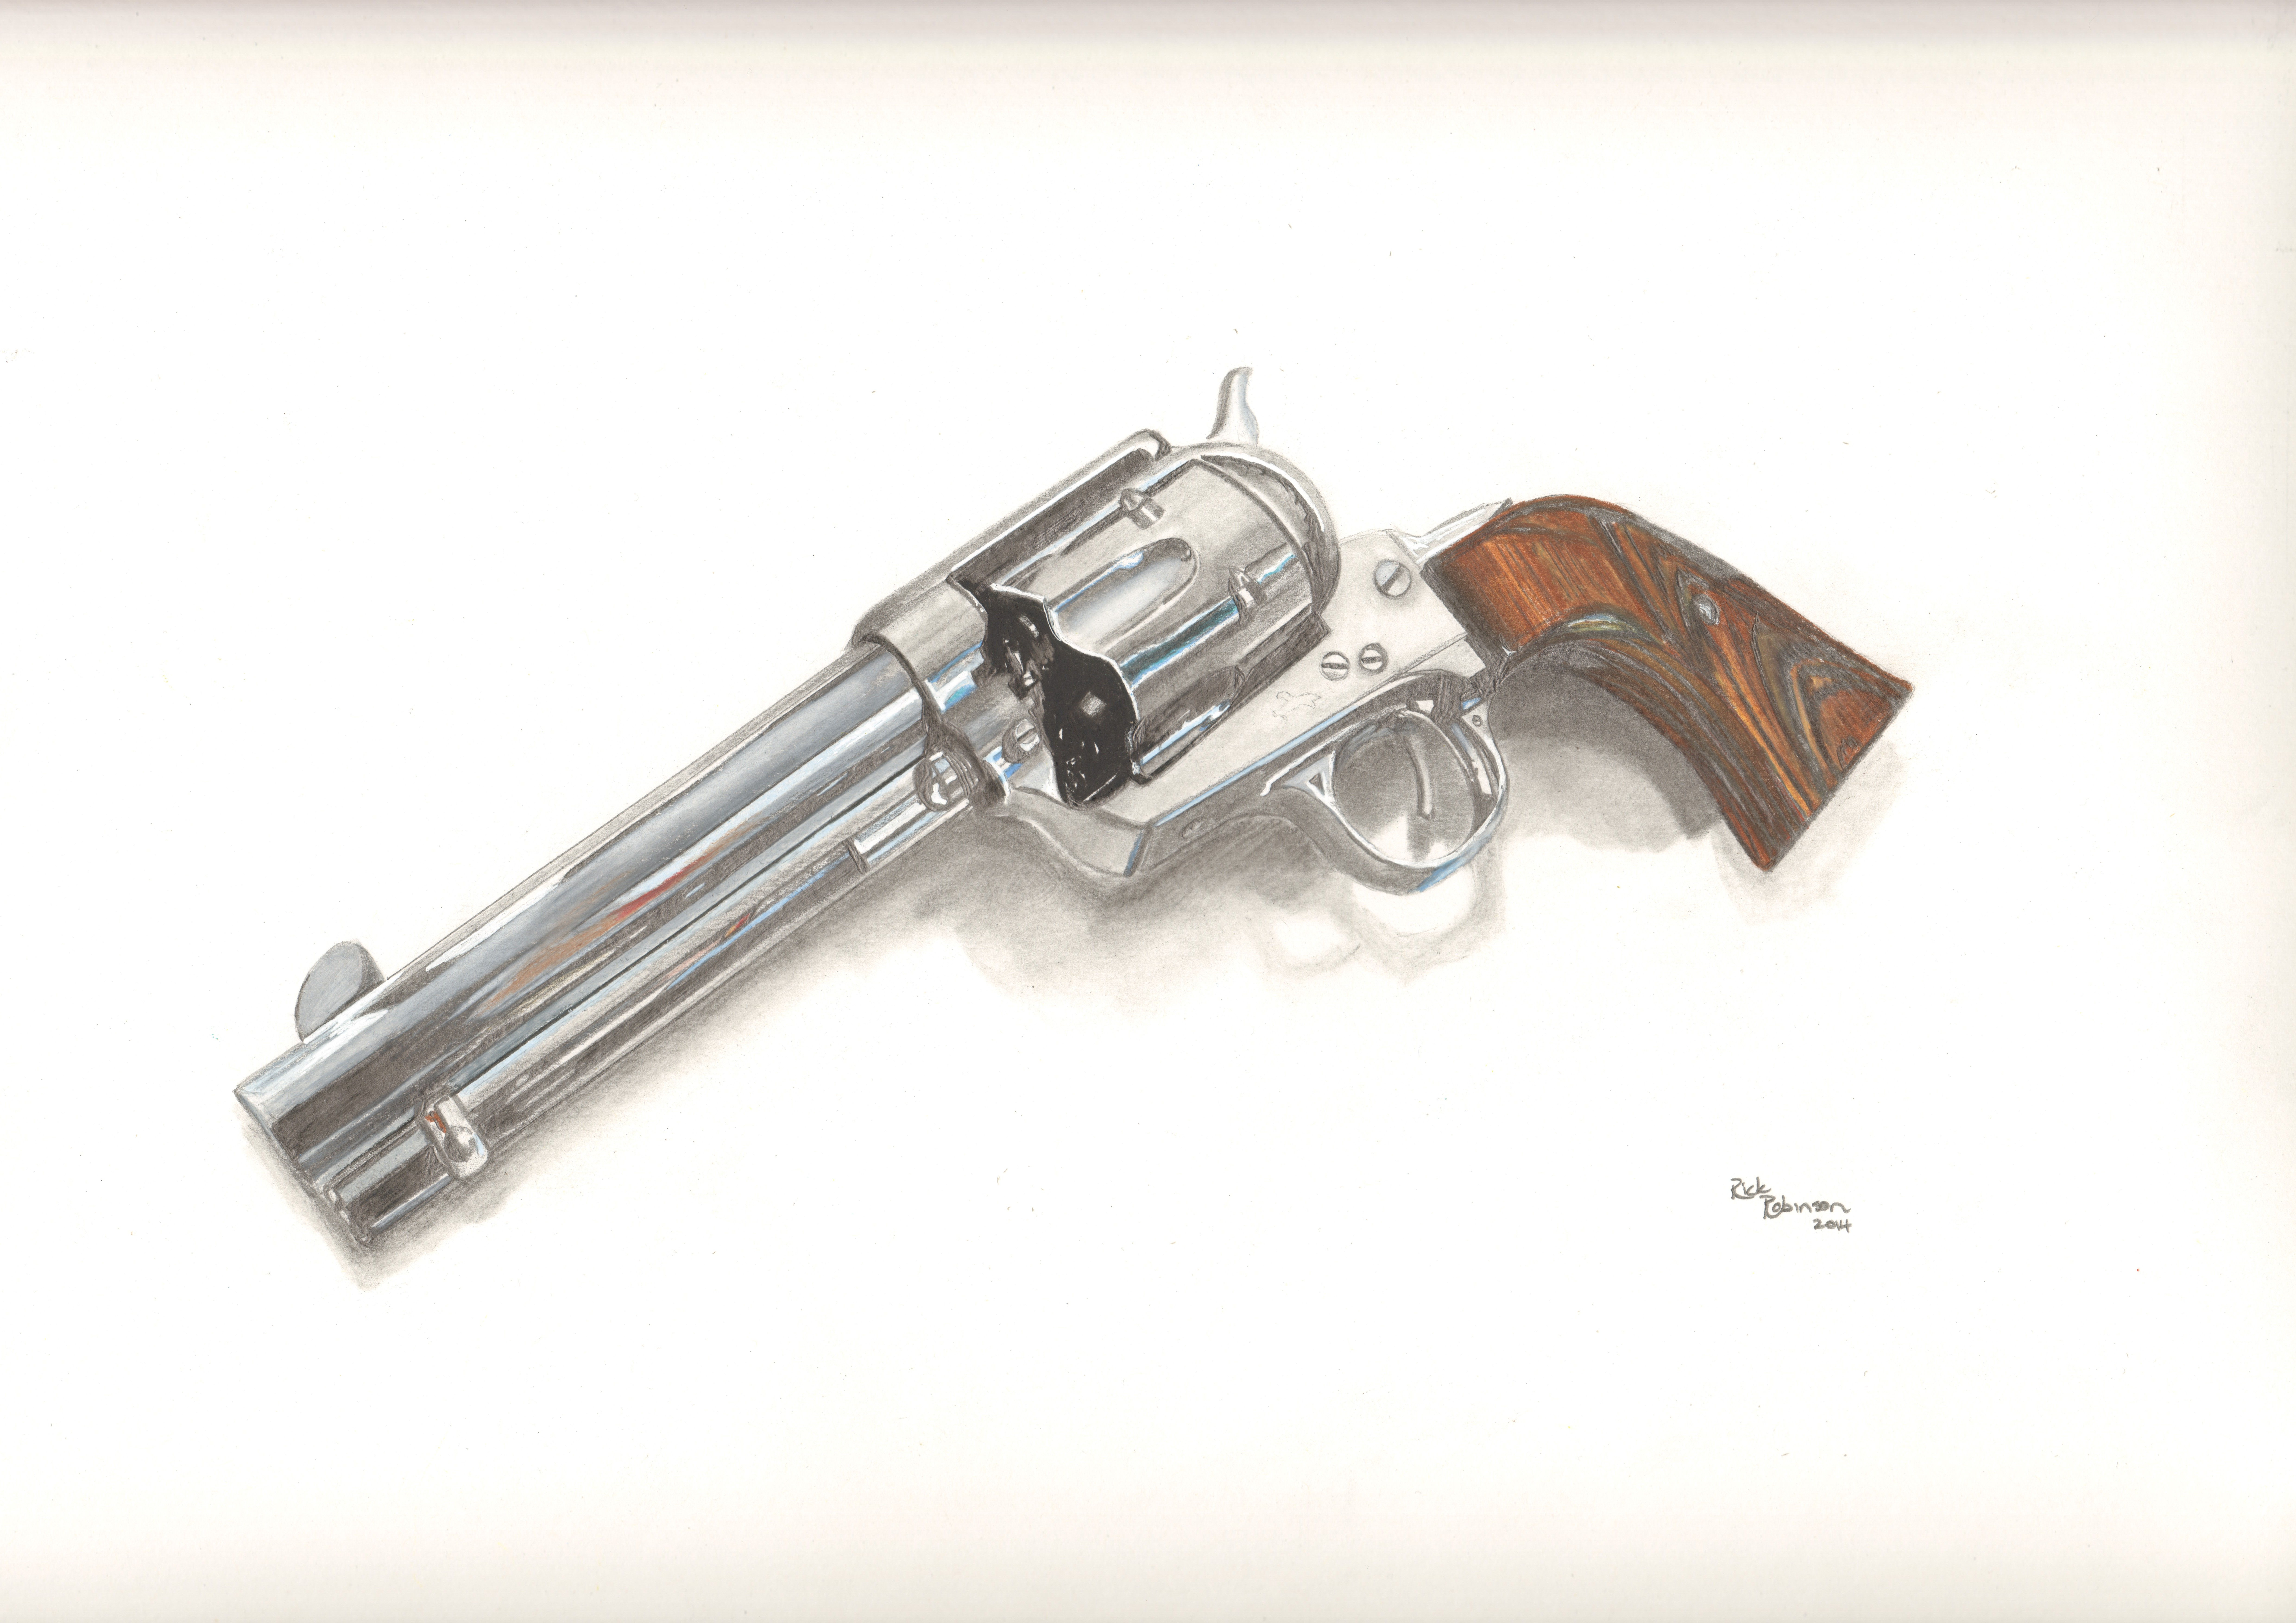 Colt Revolver Drawing Colt 45 Revolver by